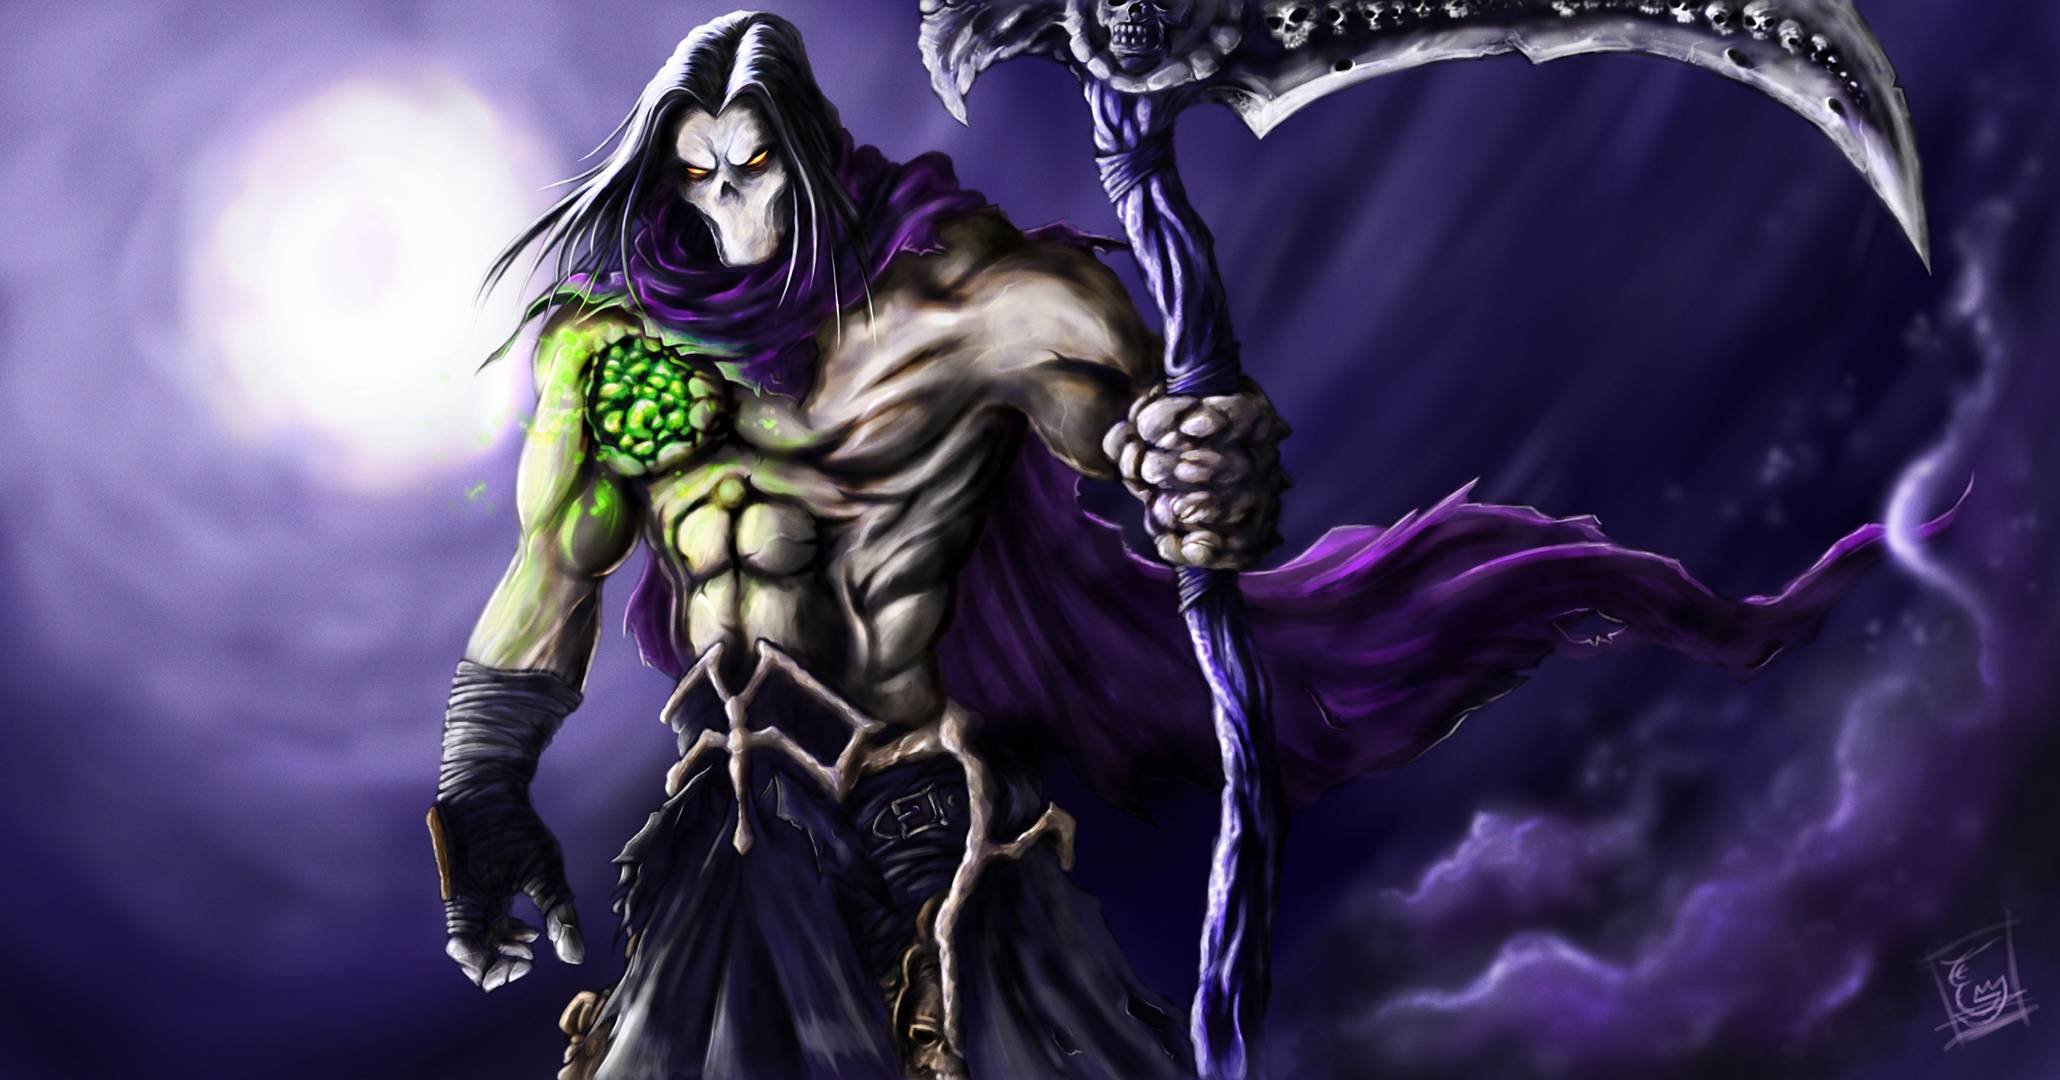 darksiders 2 Full HD Wallpaper and Background | 1920x1200 | ID:249717